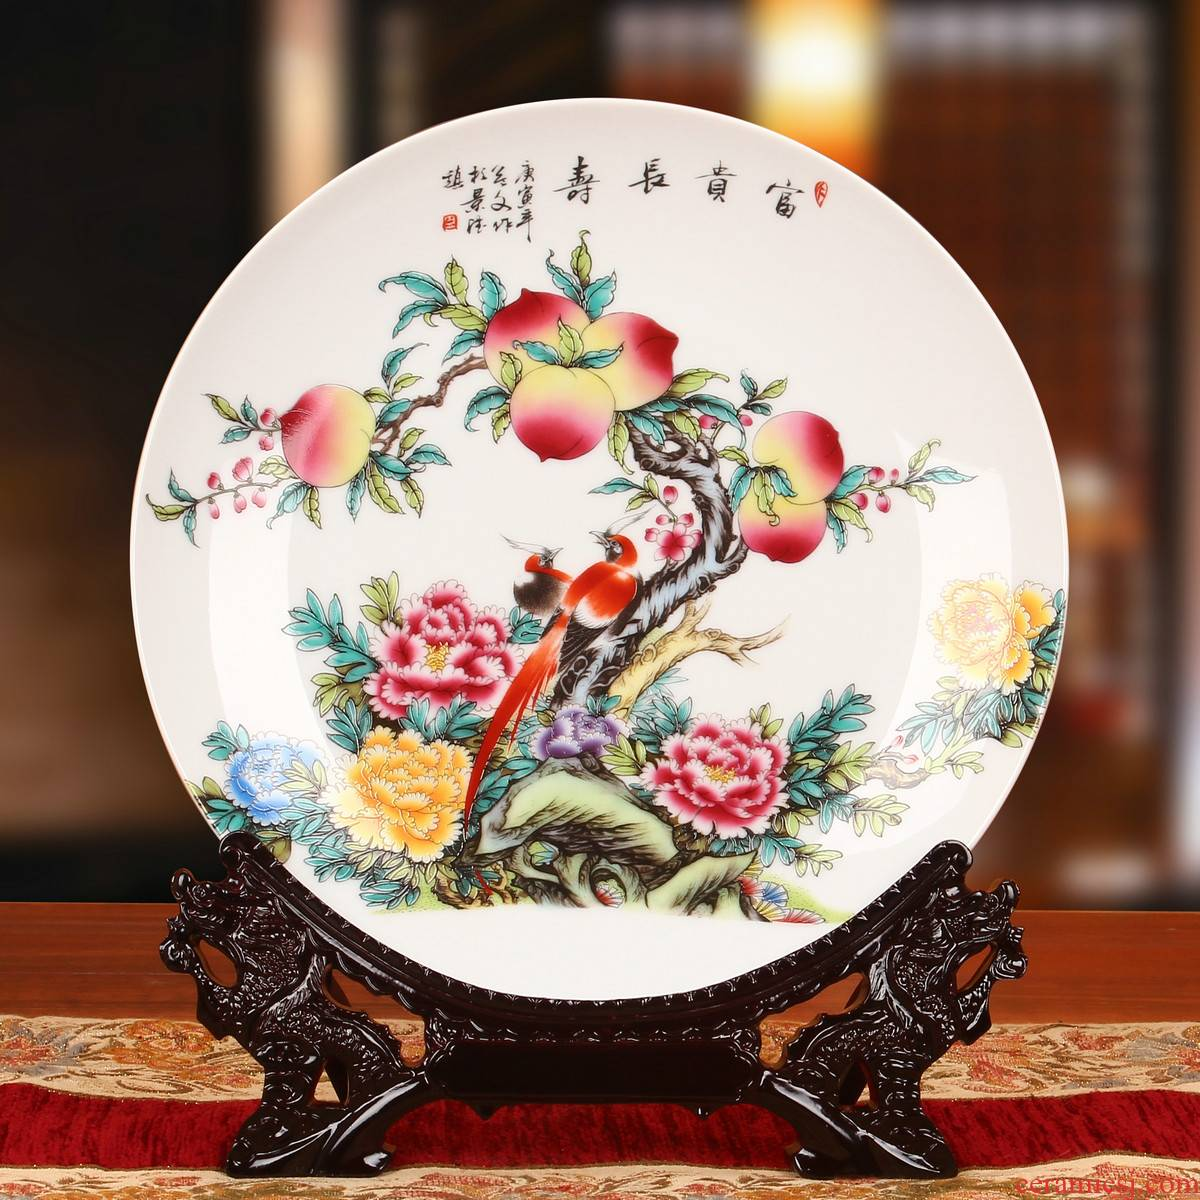 Jingdezhen ceramics pastel peach faceplate hang dish of rural household decoration decoration decoration plate